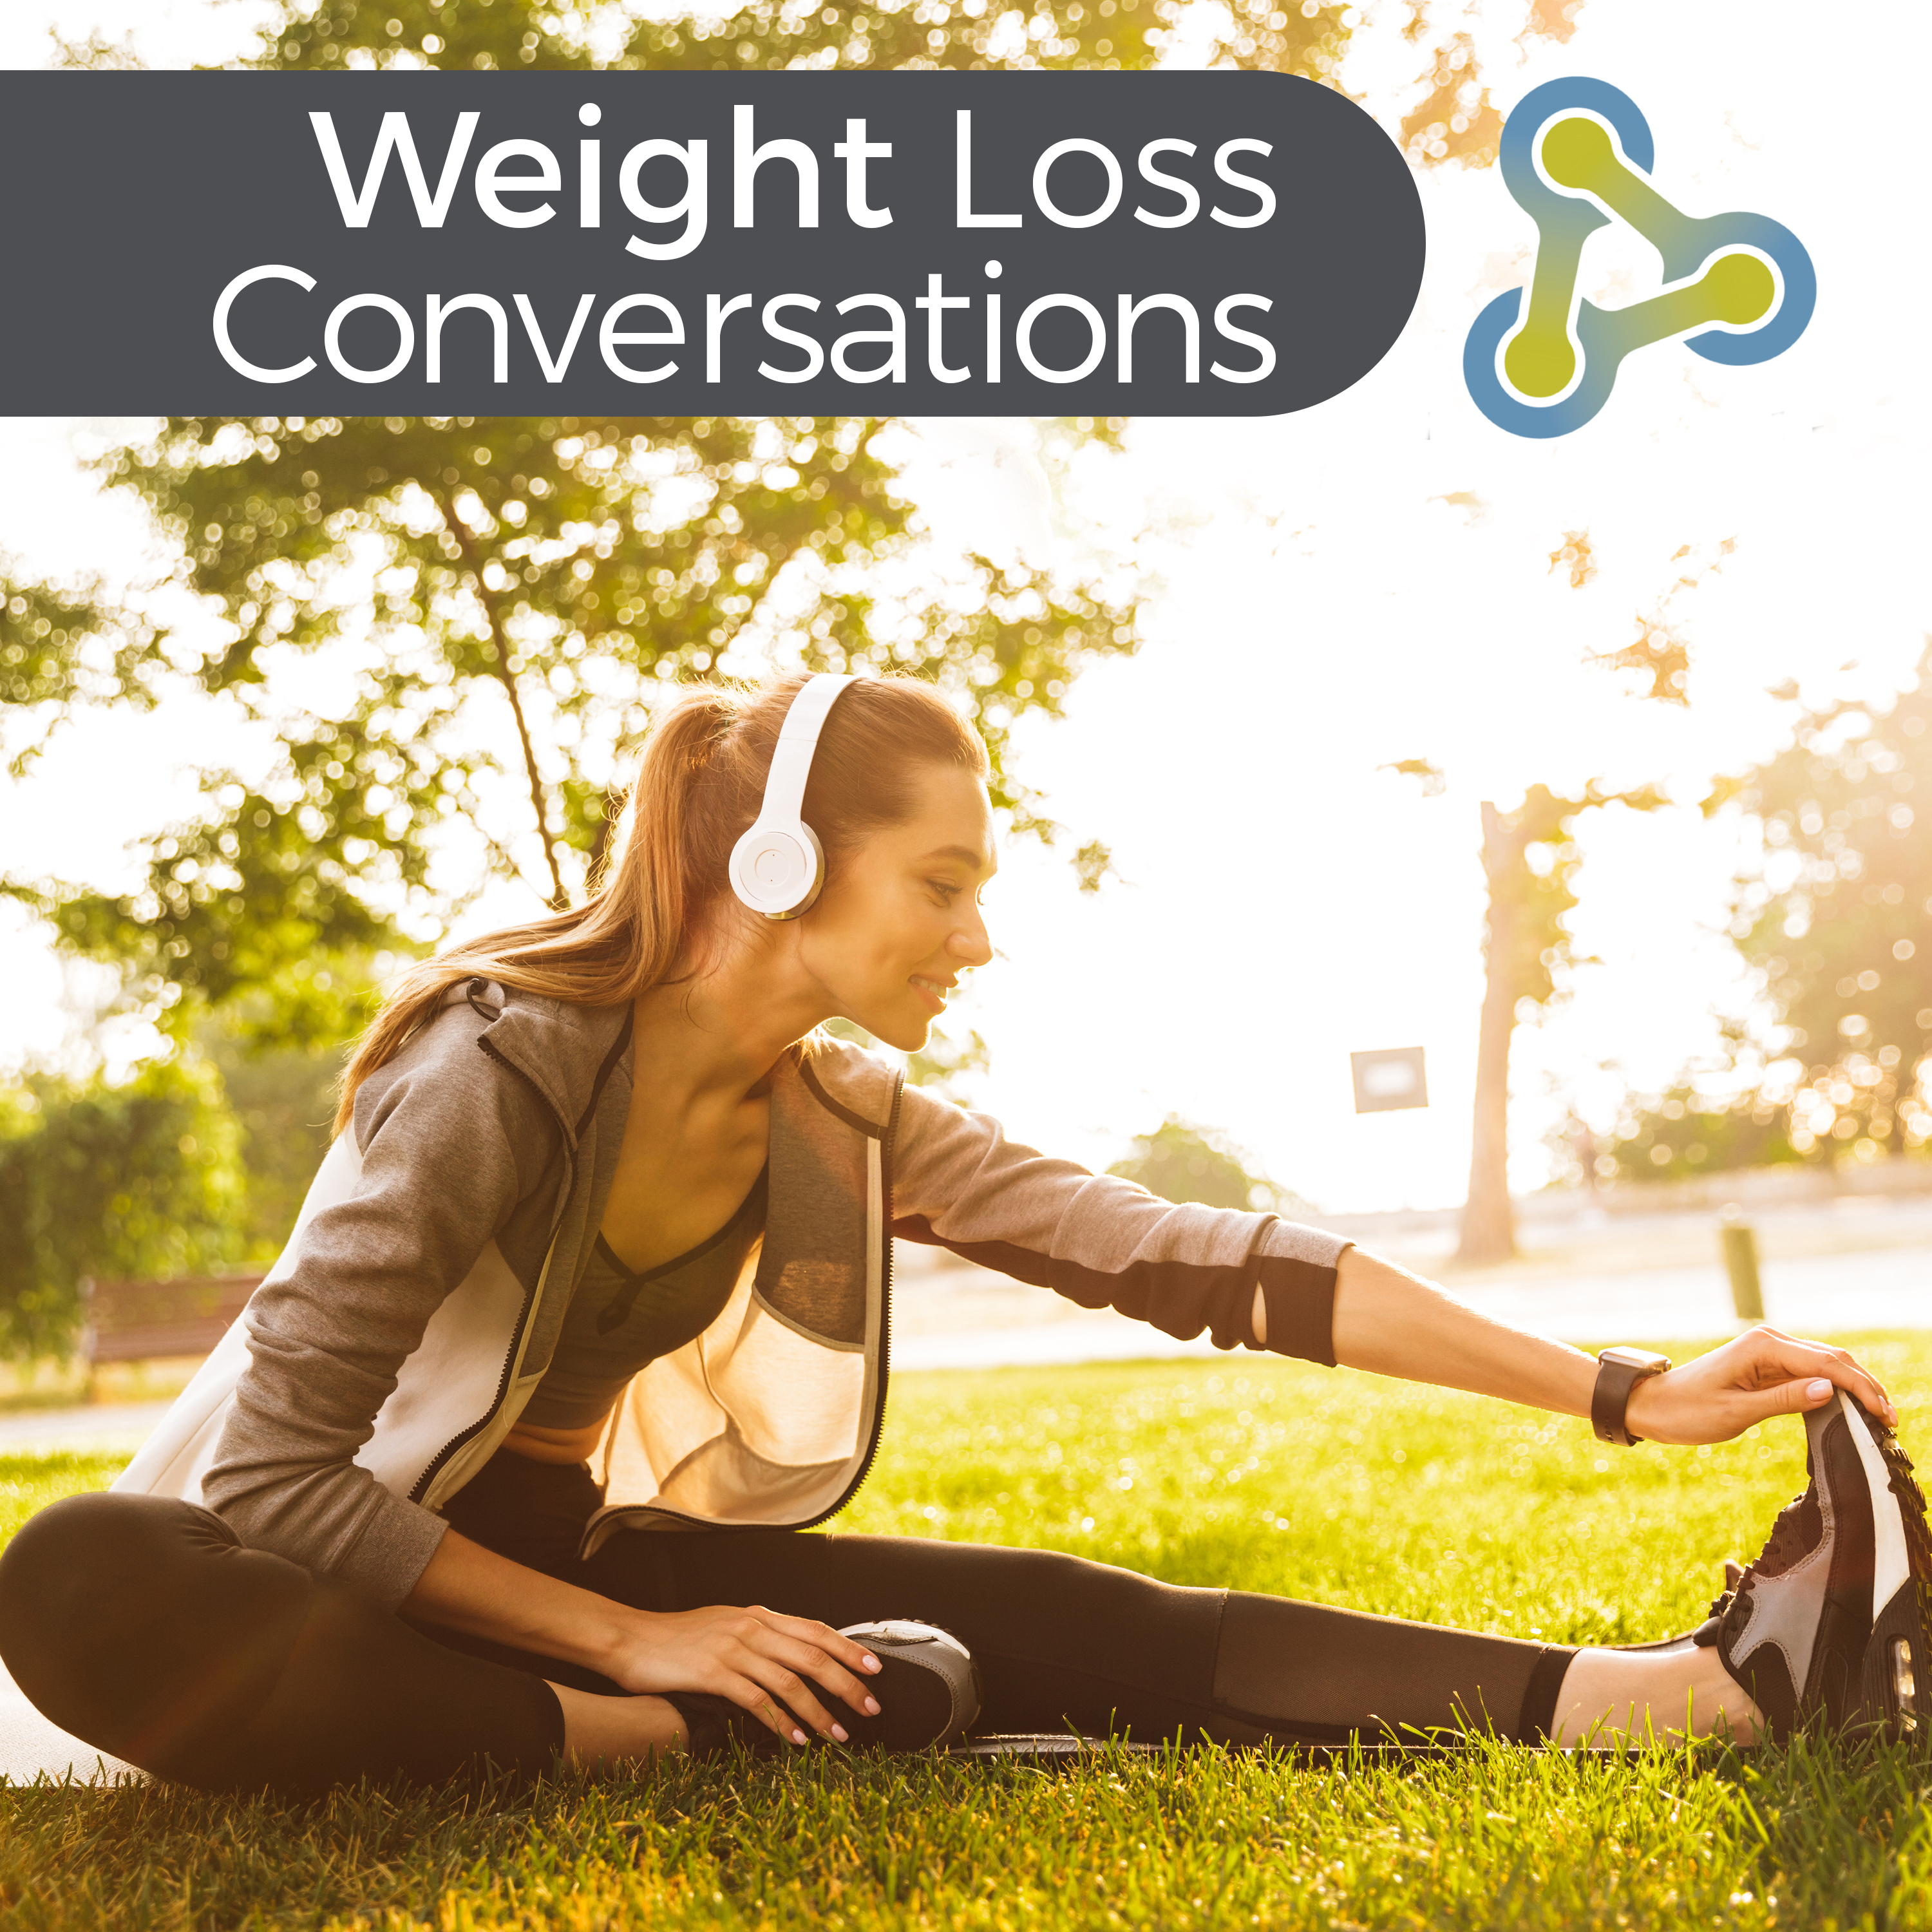 Weight Loss Conversations